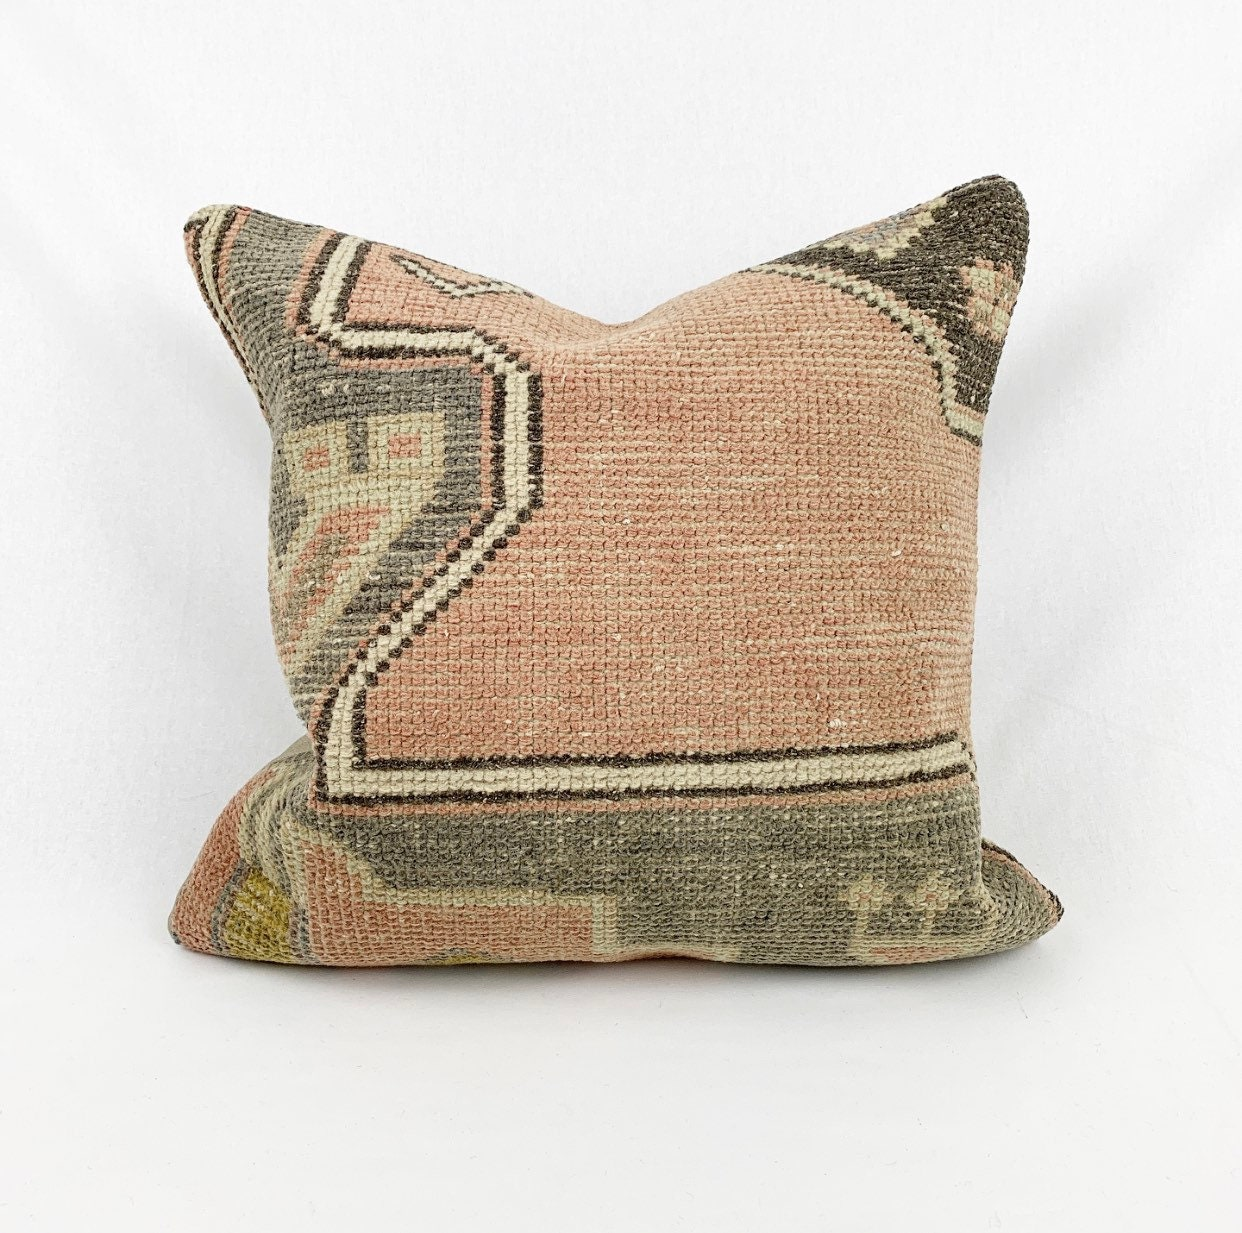 Vintage Rug Pillow Rug Pillow Cover,20/'/'x 20/'/'Inches Rug Pillow,Turkish Rug Pillow,Wool Pillow,50 x 50cm pillow,Decorative Pillow